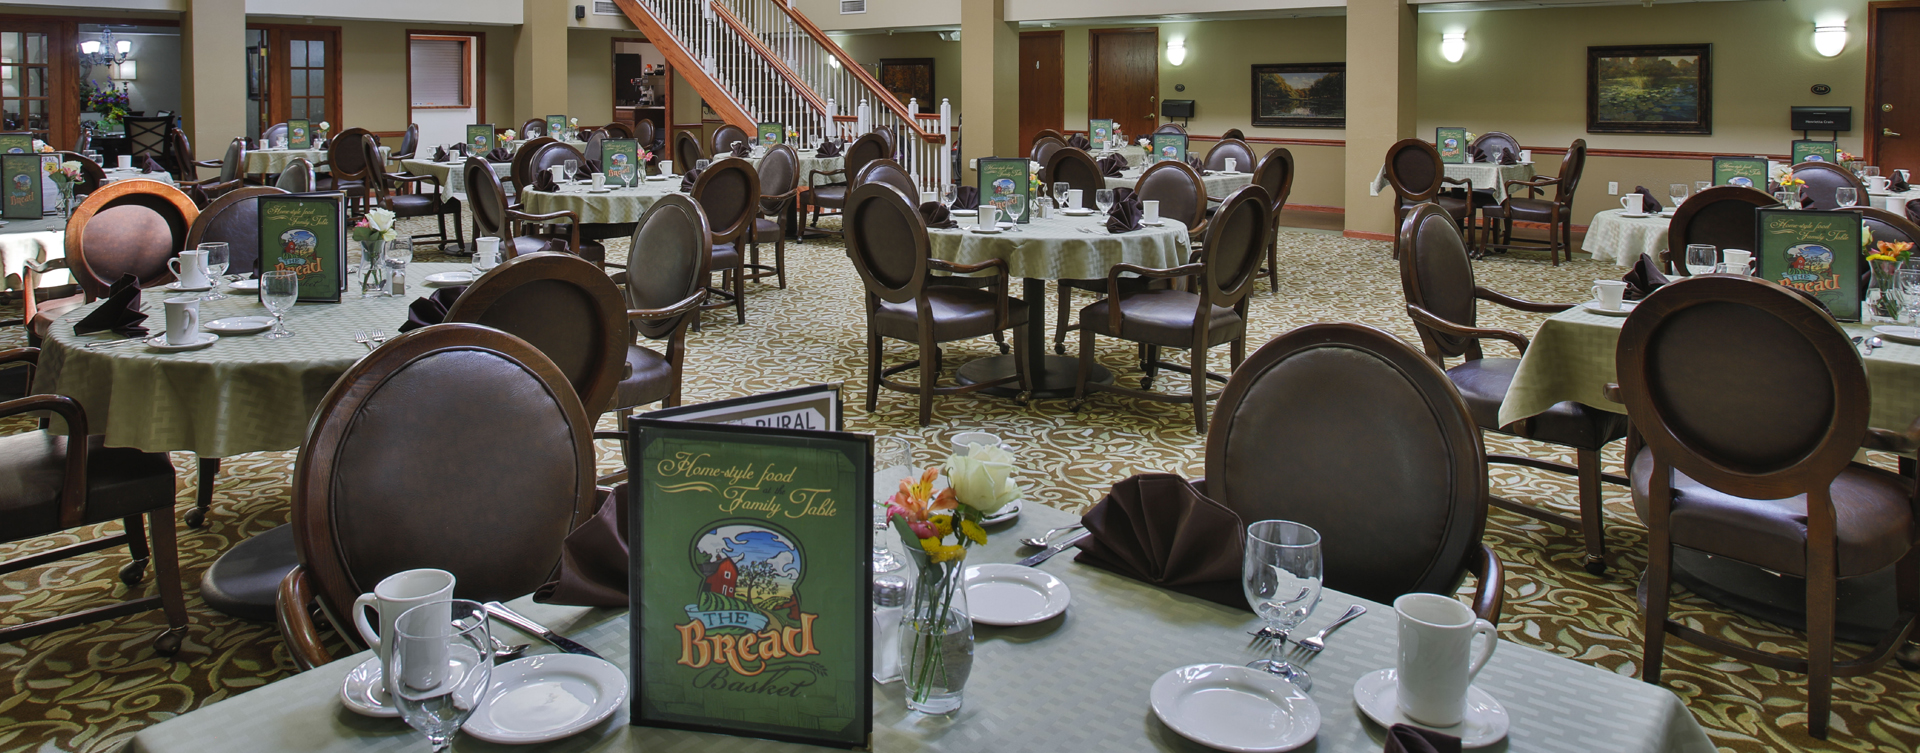 Enjoy restaurant -style meals served three times a day in our dining room at Bickford of Bloomington